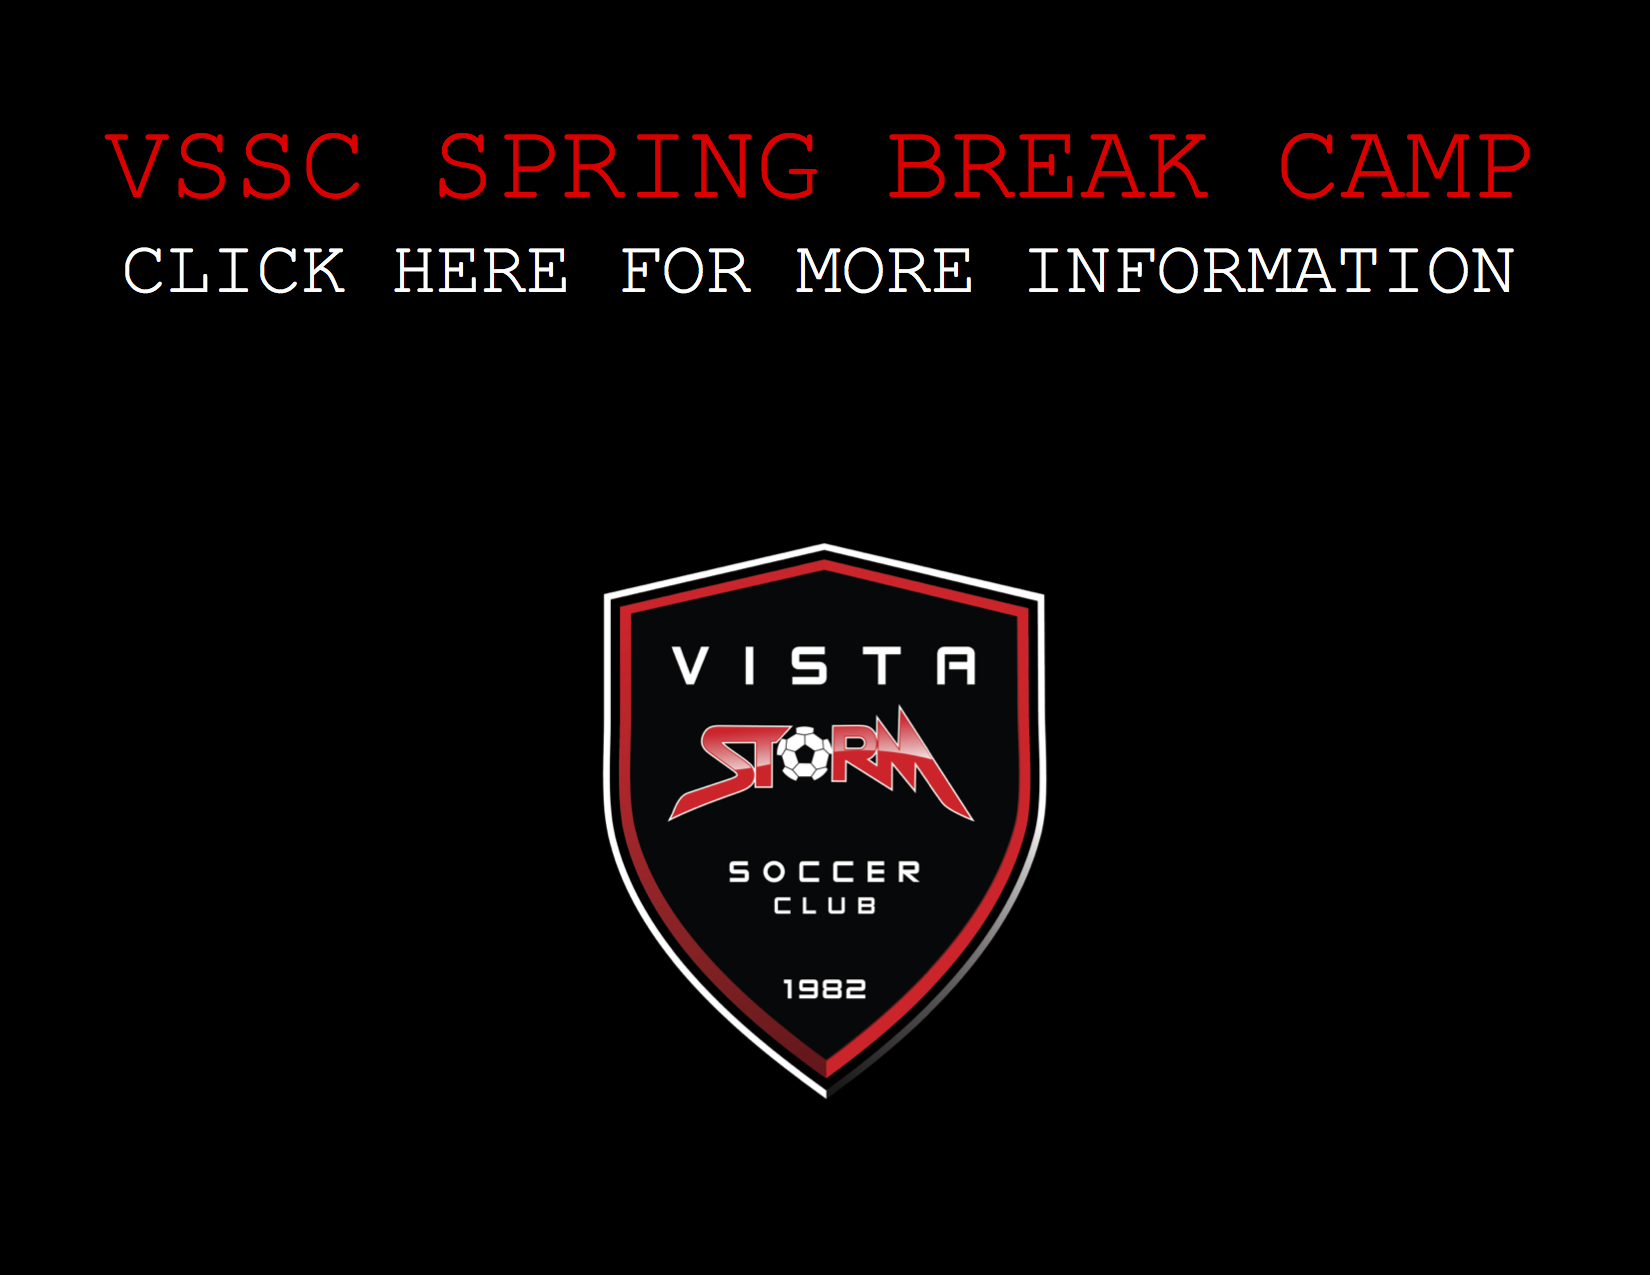 Vista Storm S.C. Spring Break Camp